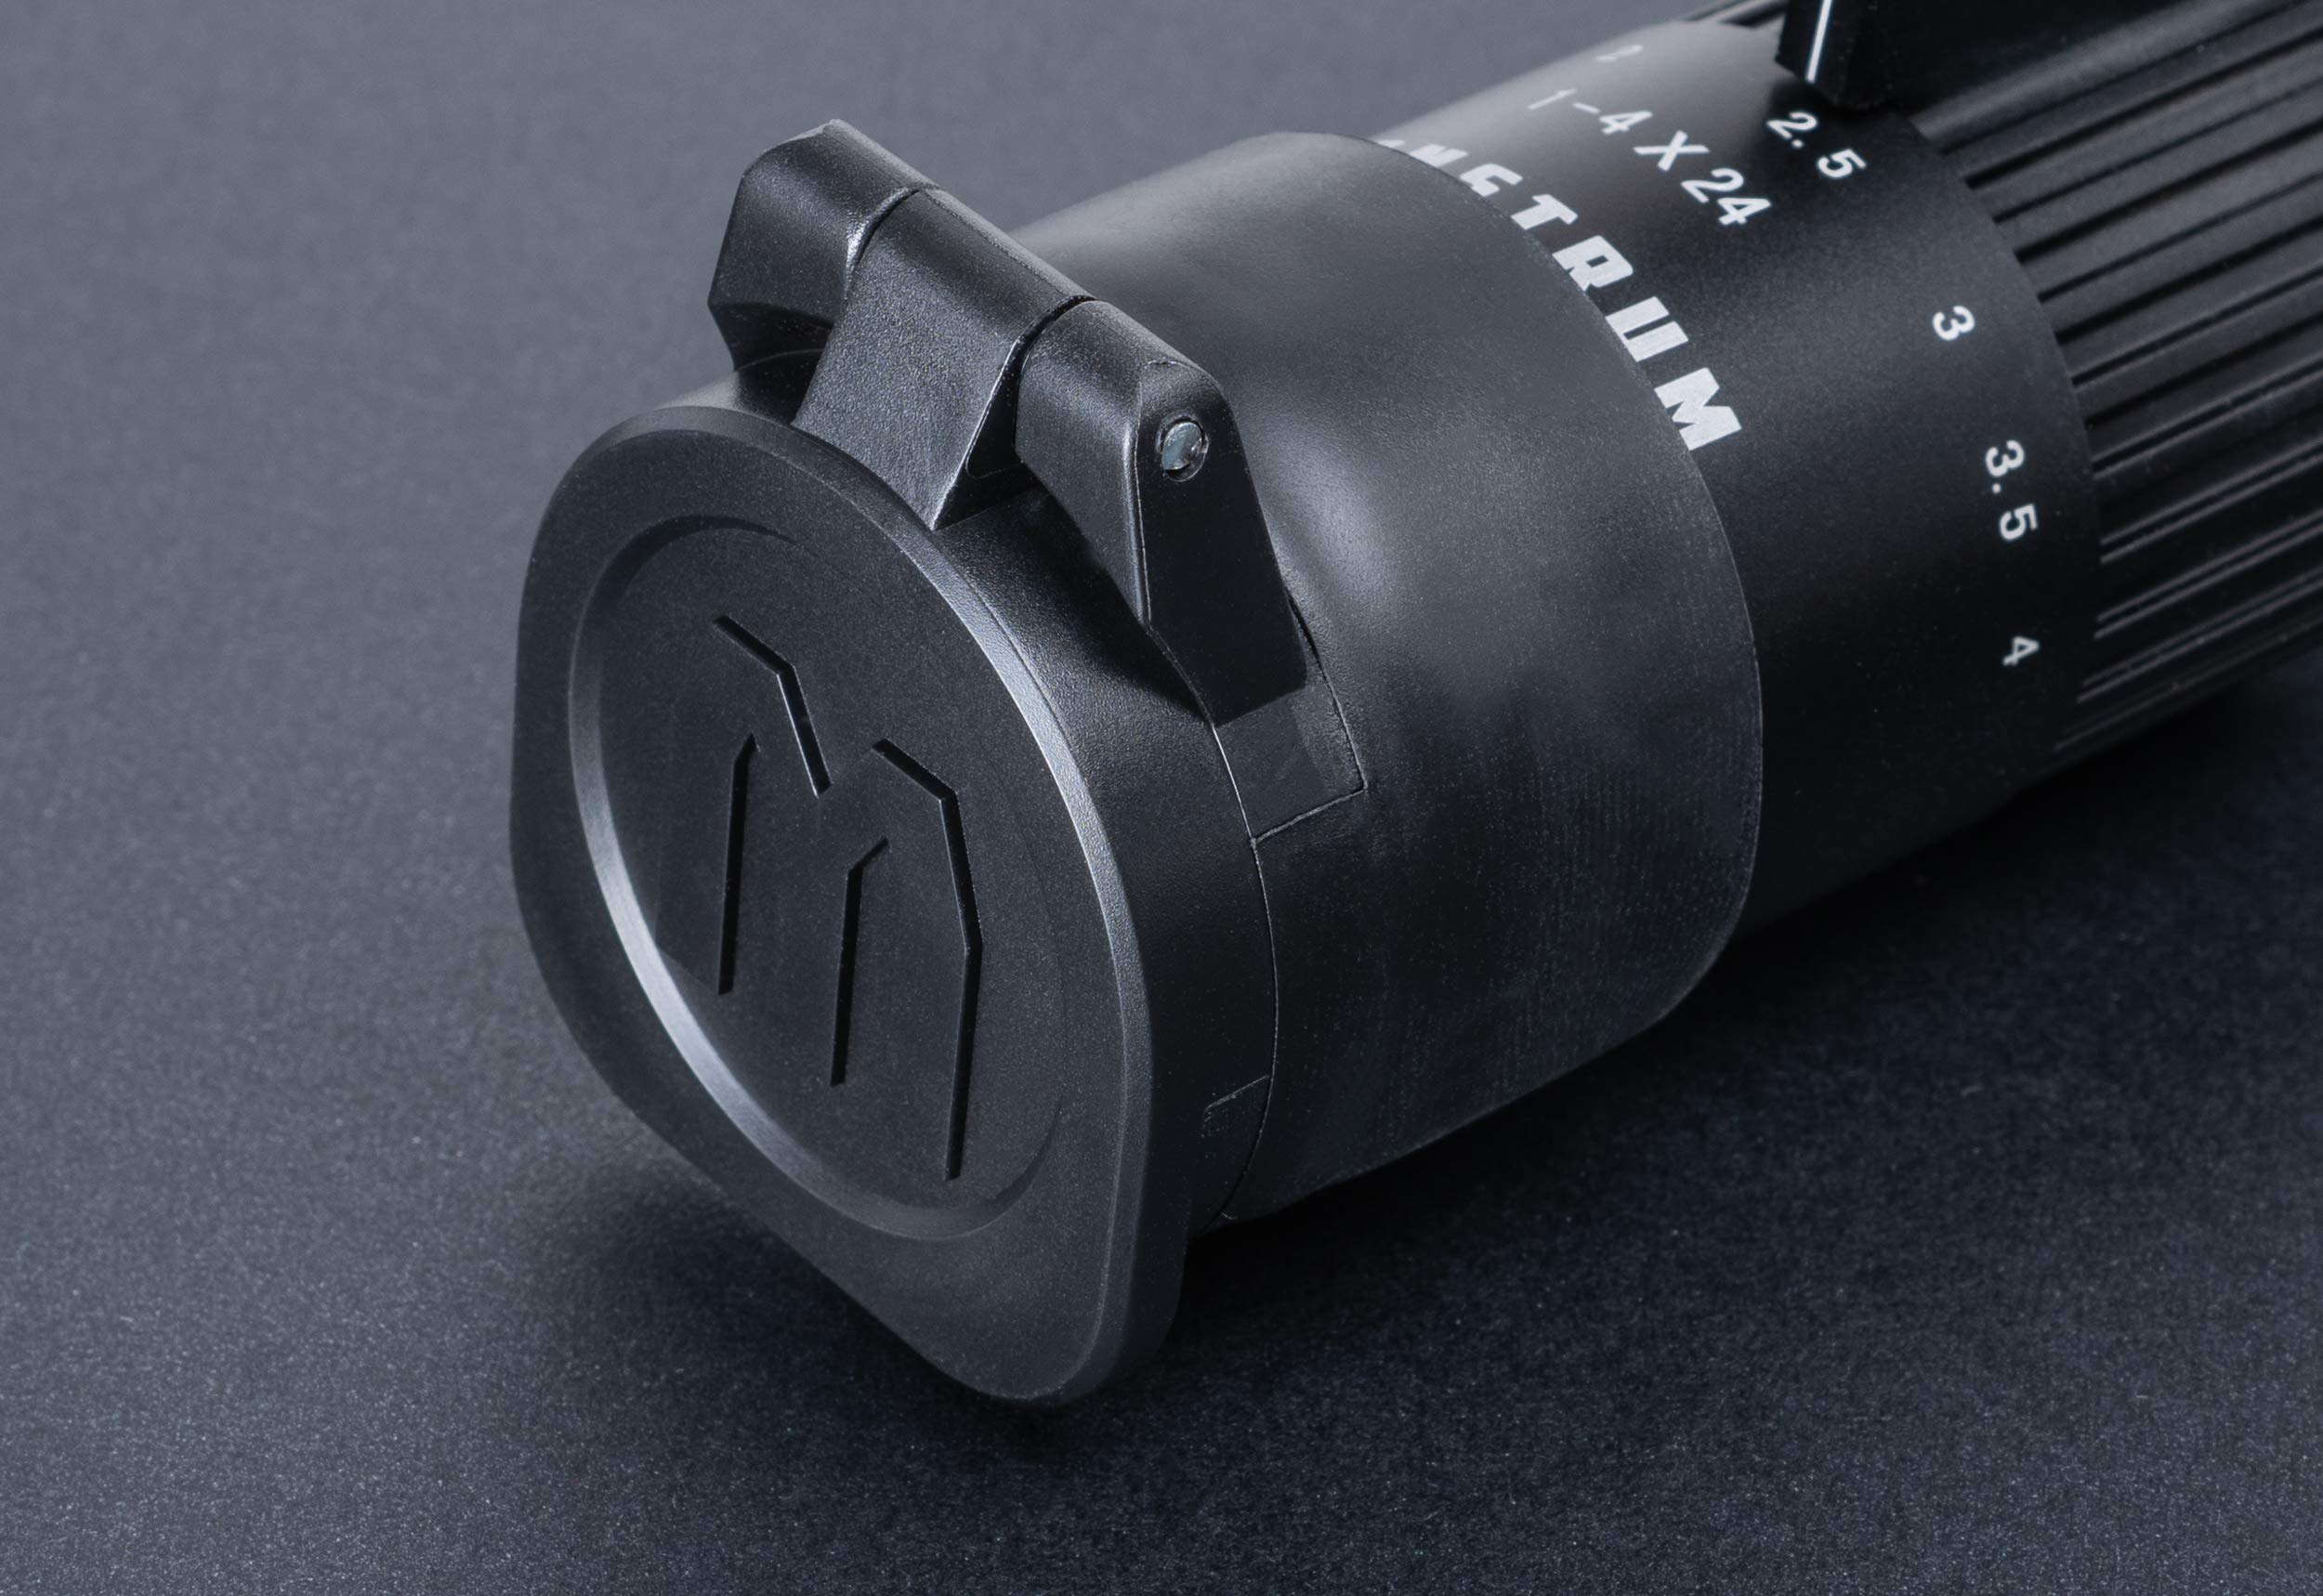 Monstrum Rubberized Flip-Up Rifle Scope Lens Covers